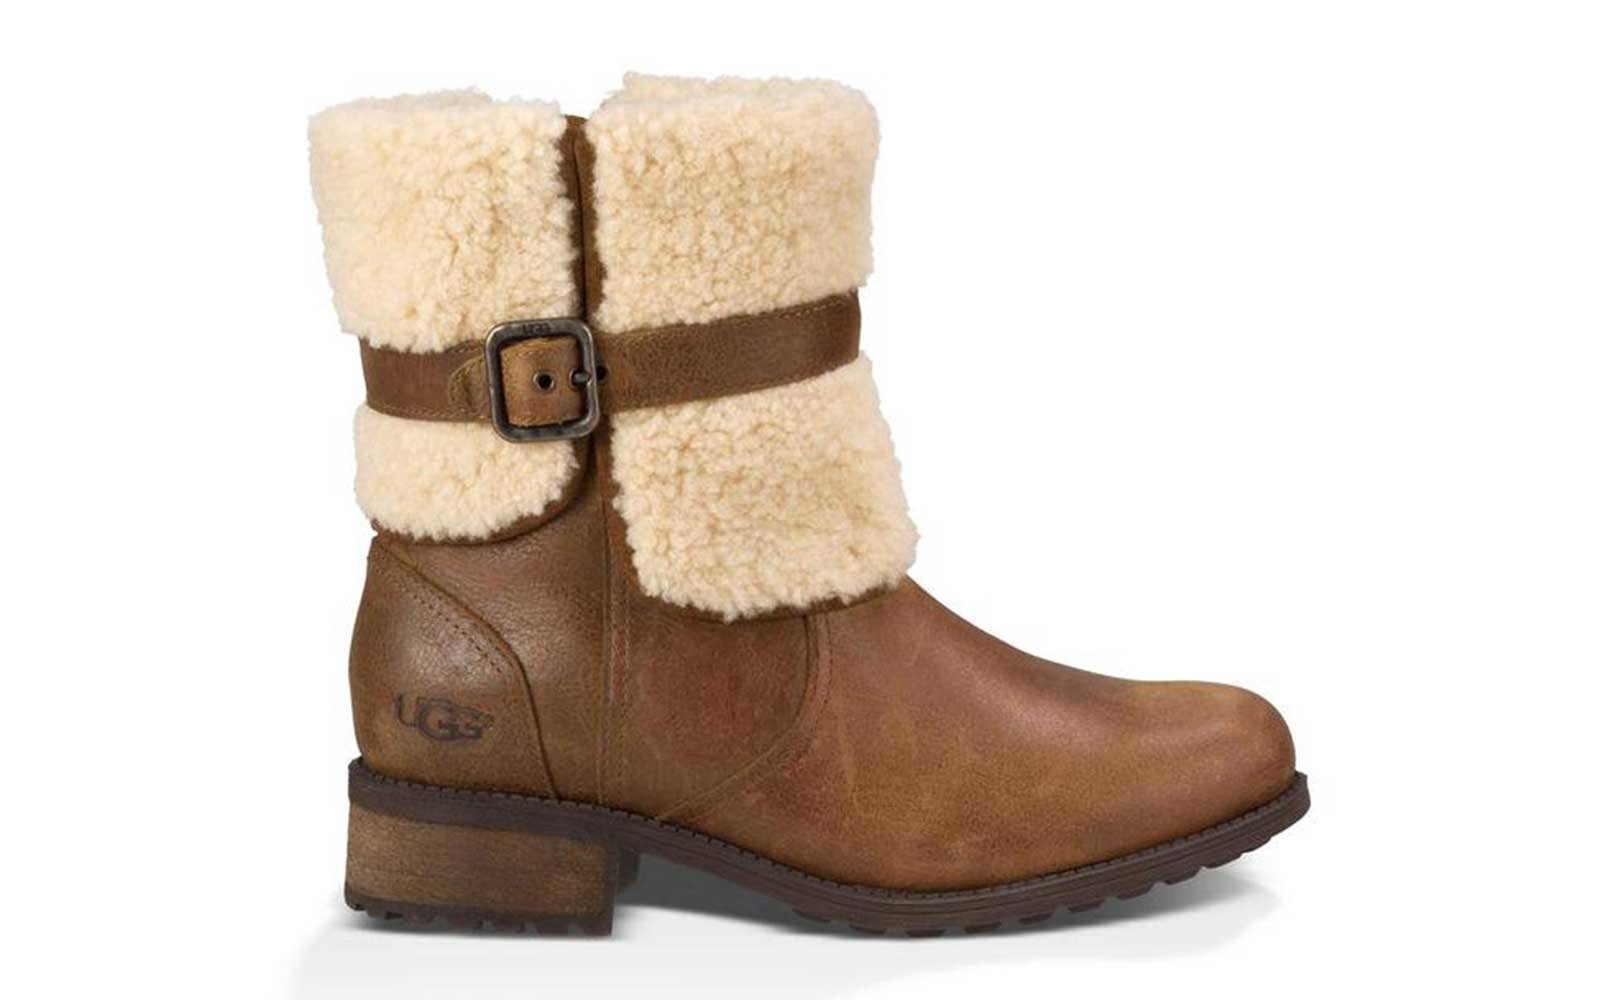 Water-resistant Ugg Boots